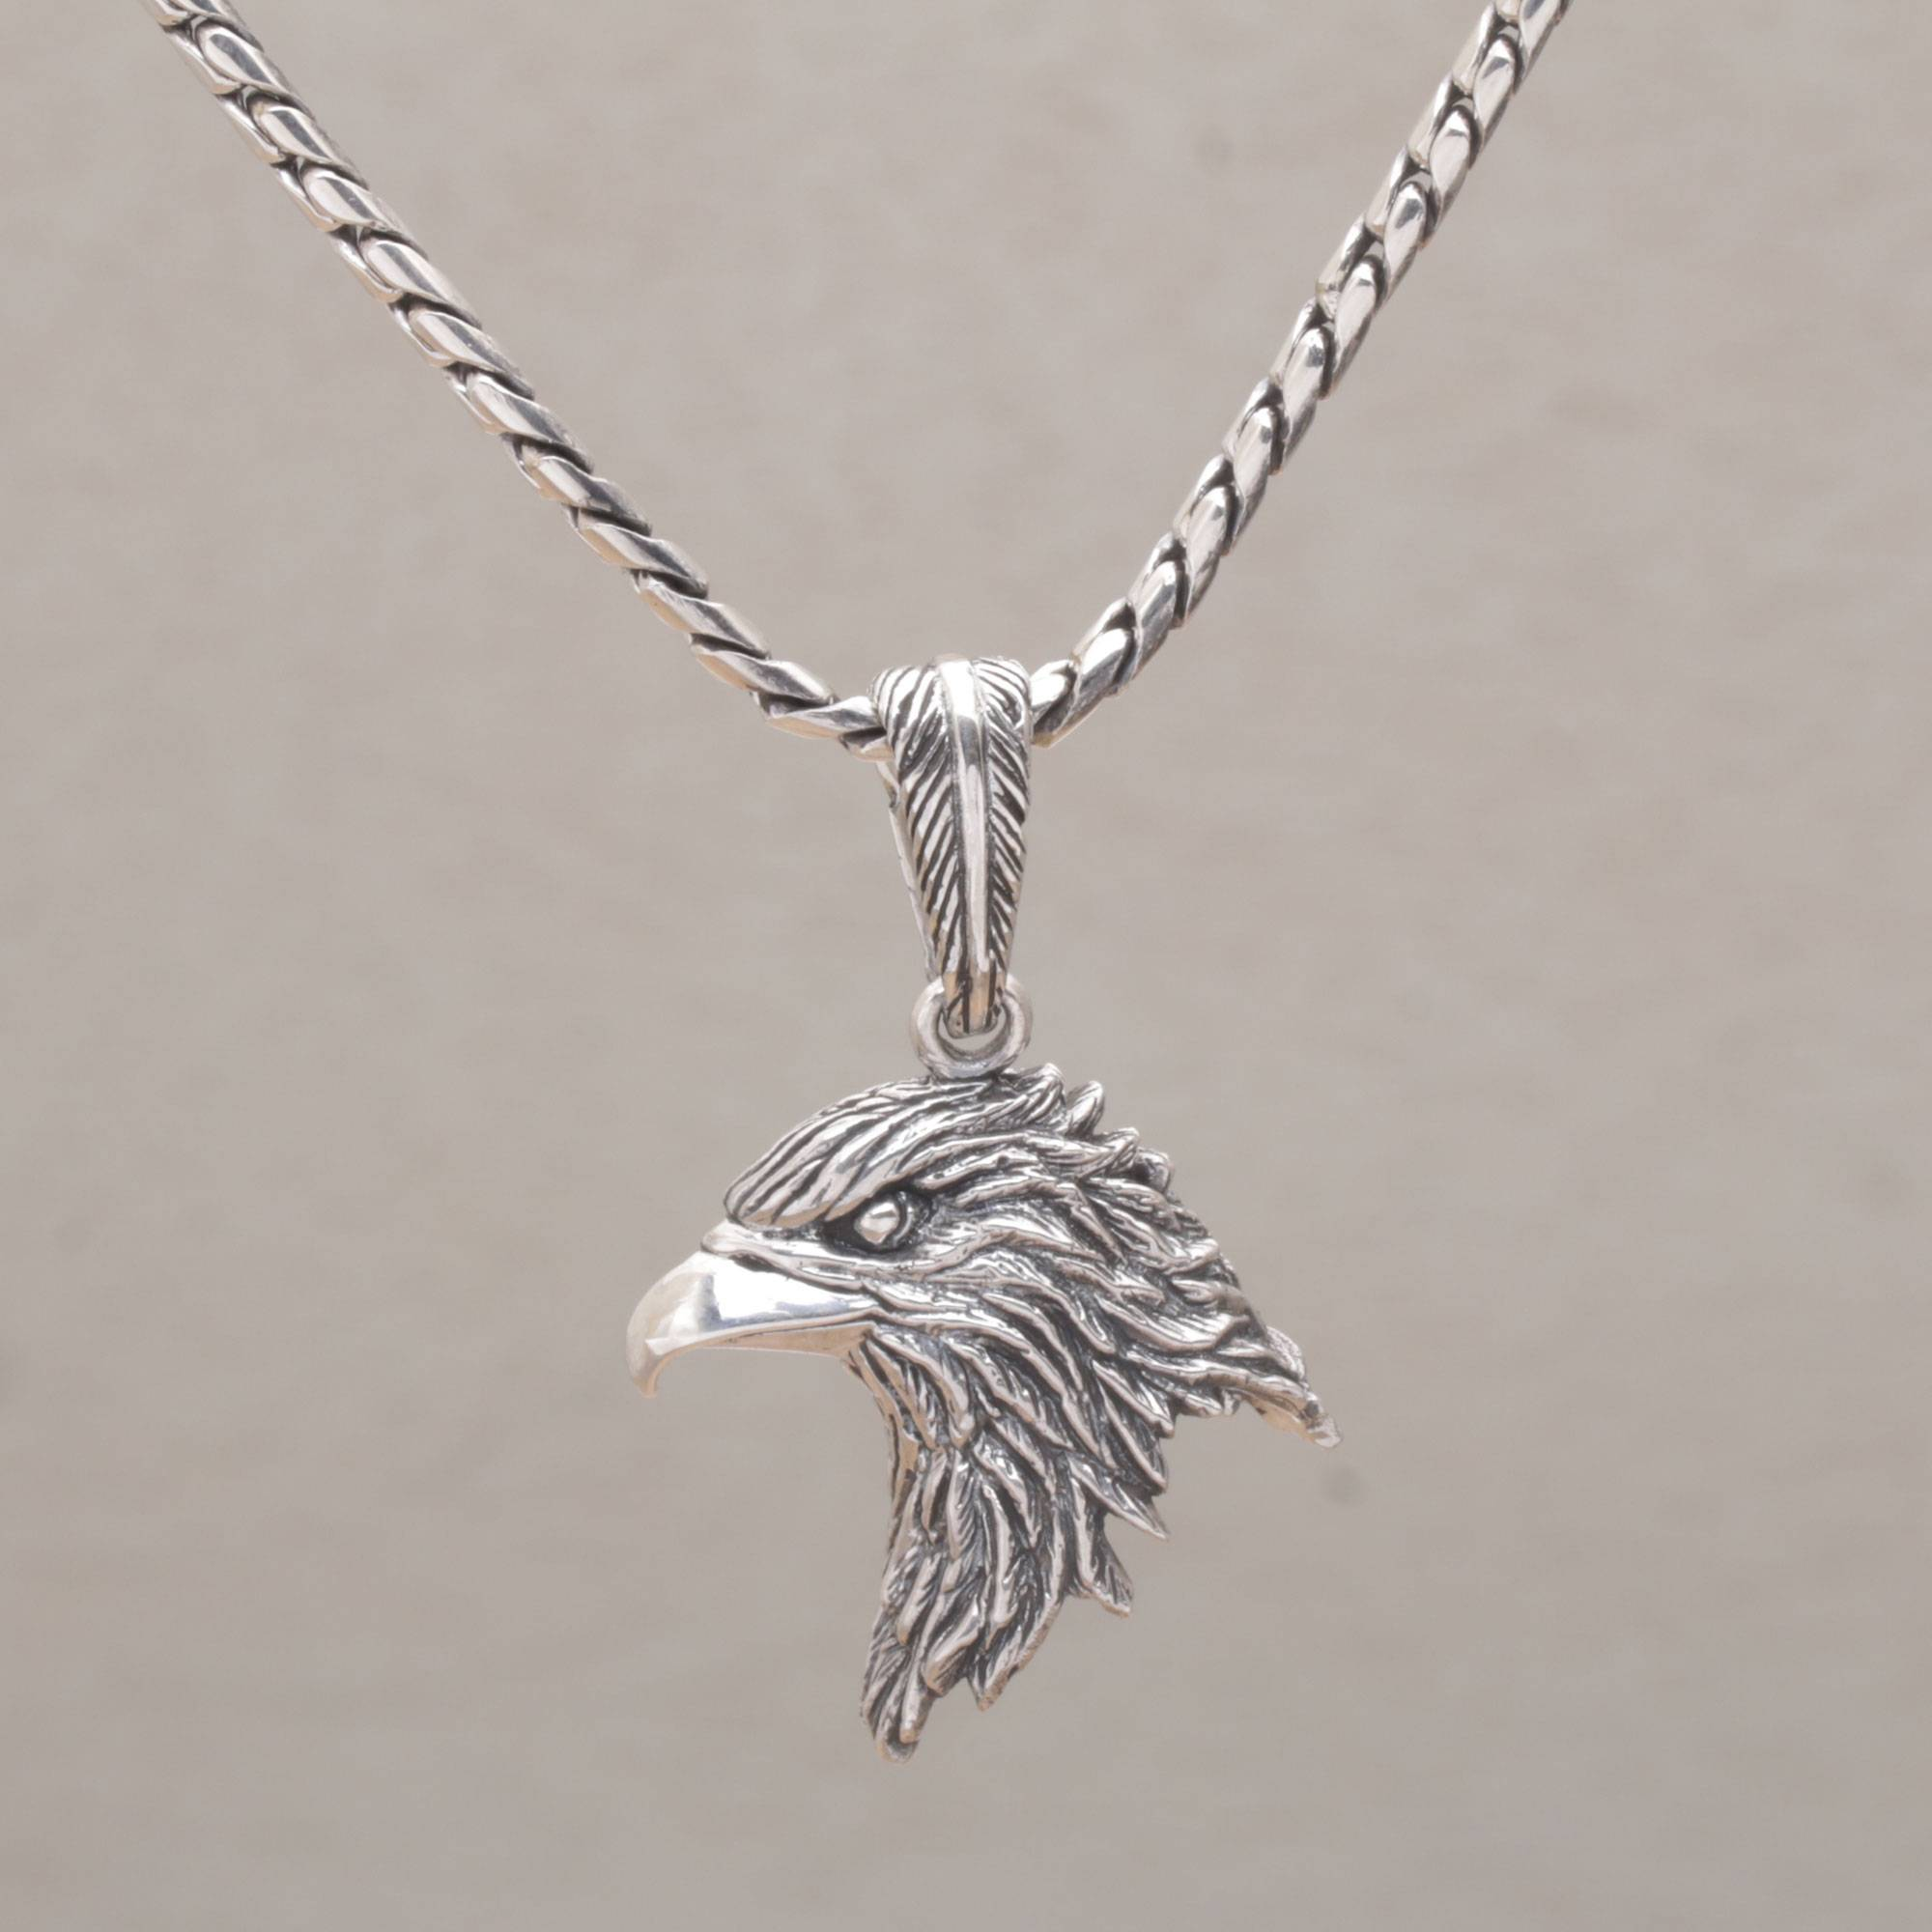 jewelry silver necklace ancient fullxfull pendant il eagle charm listing dwgr bird